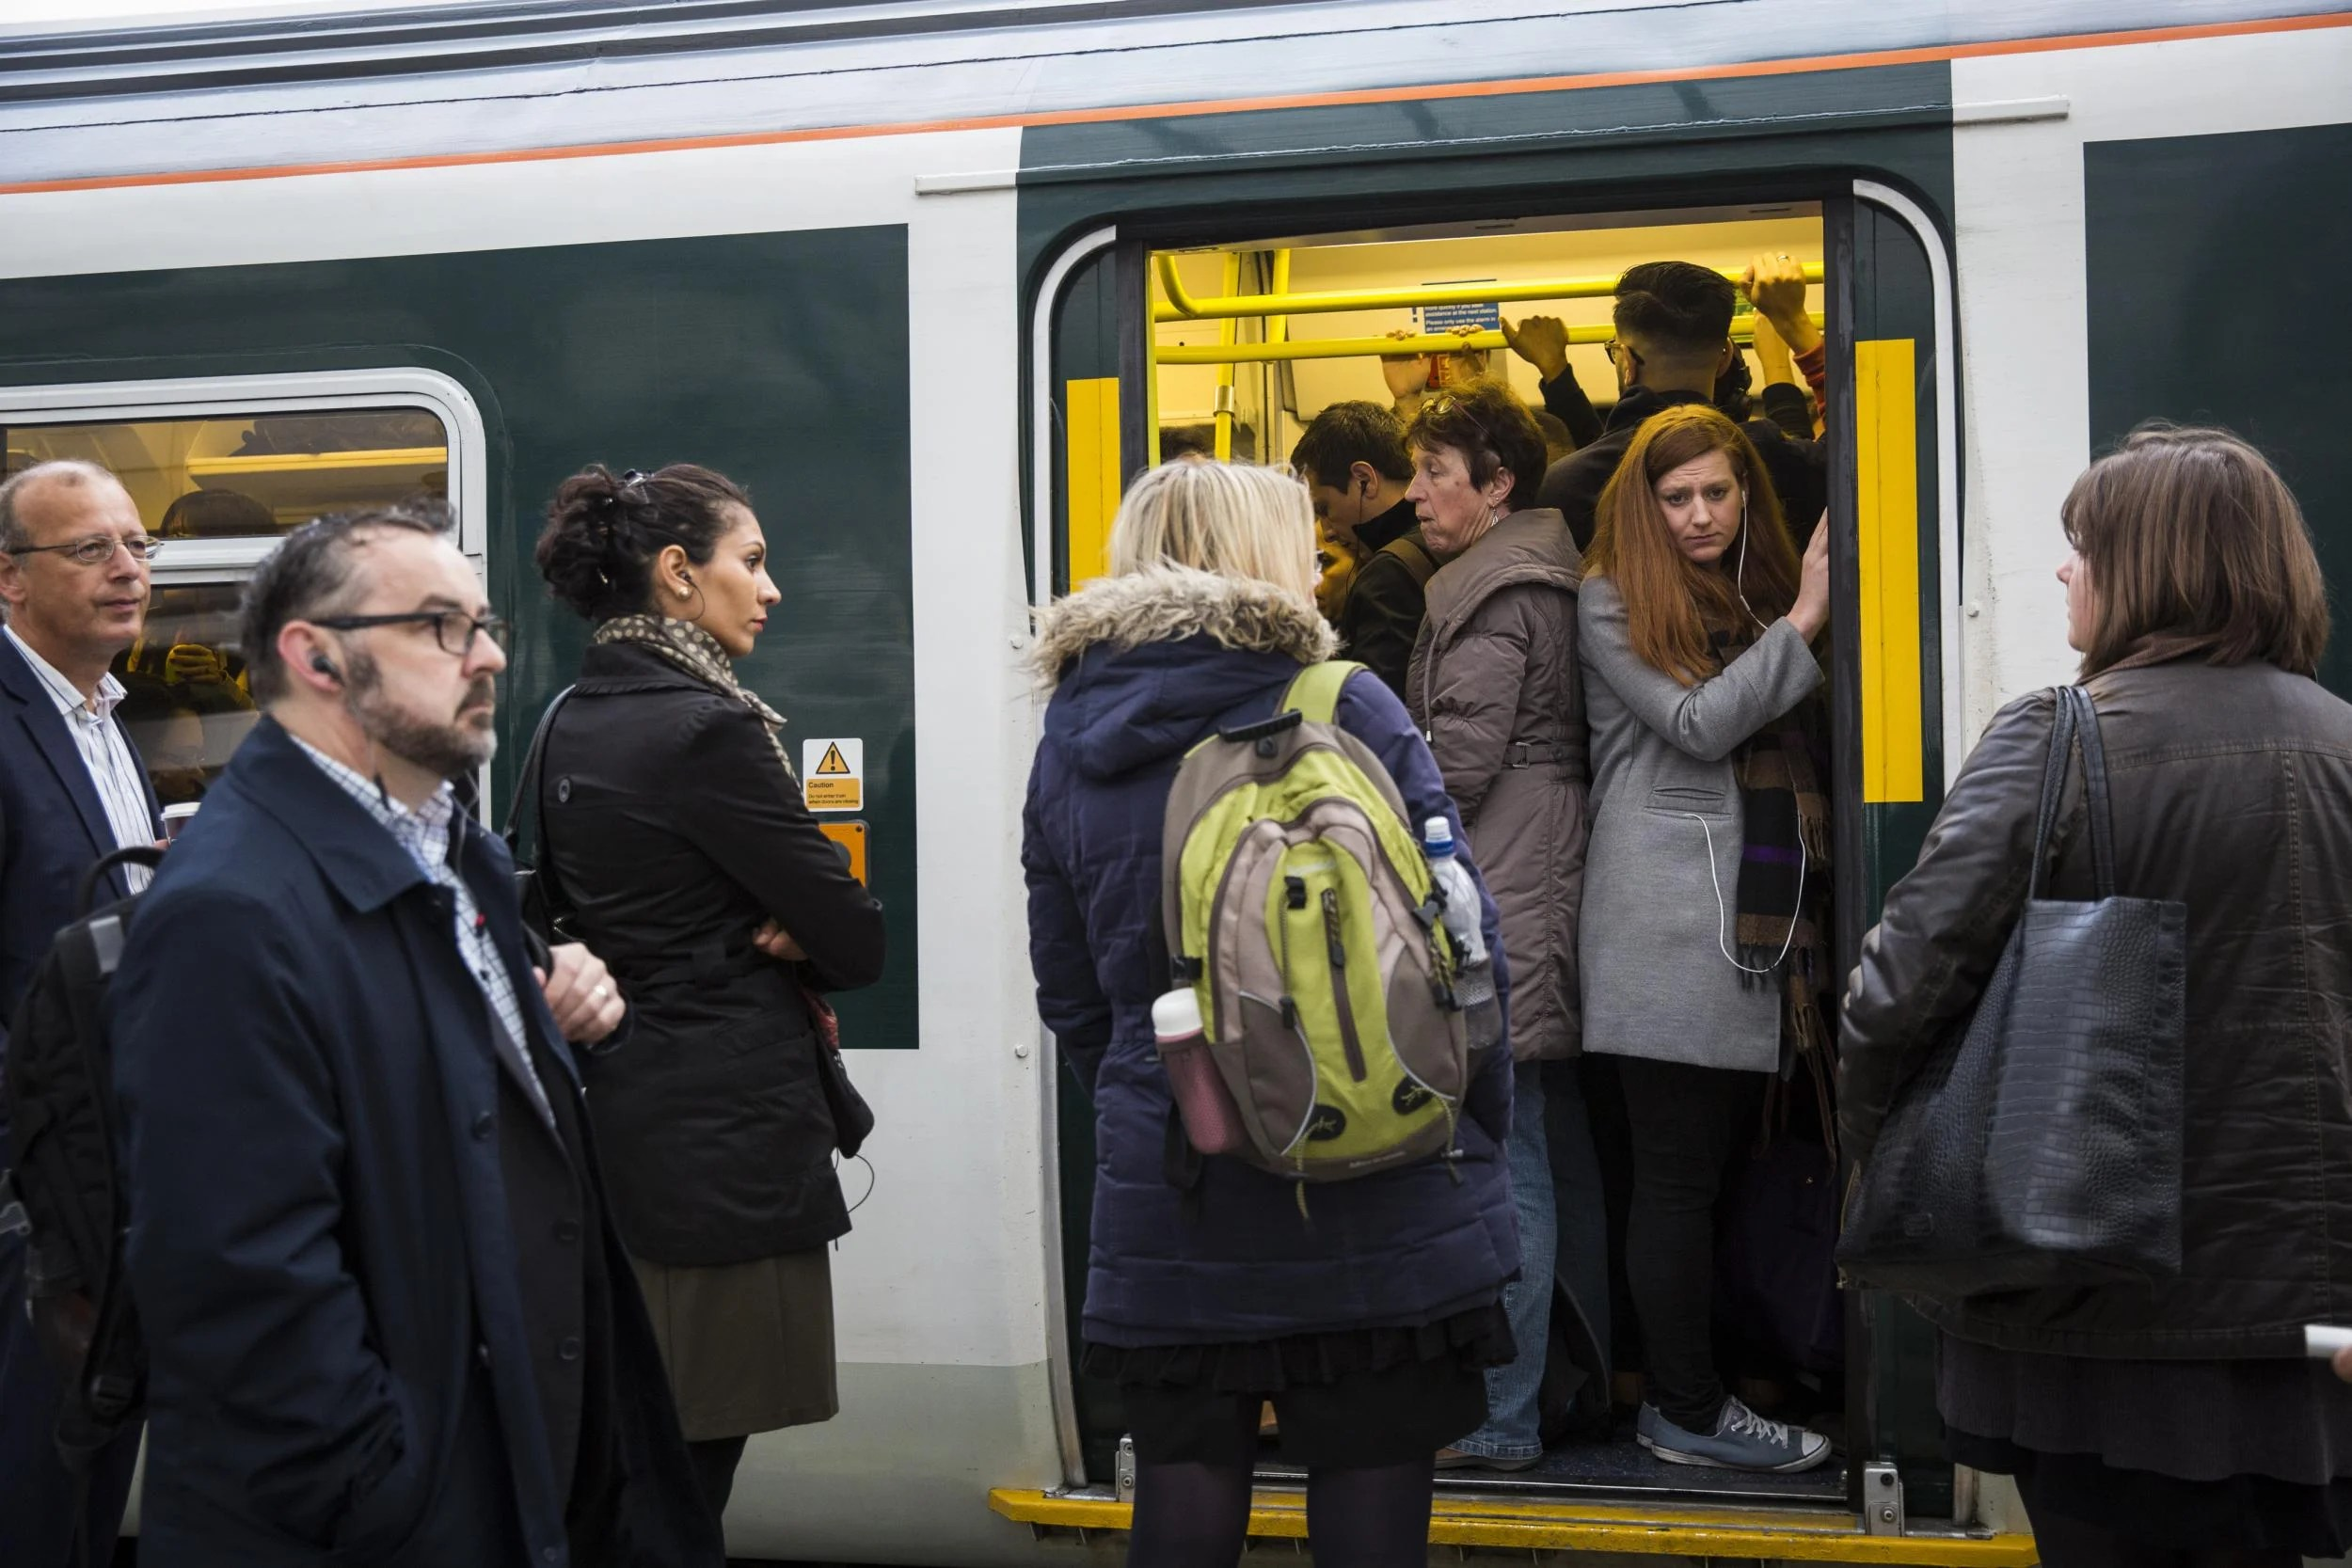 gettyimages-615359306 London weather latest: Travel misery for commuters enters second day as flooding halts services again